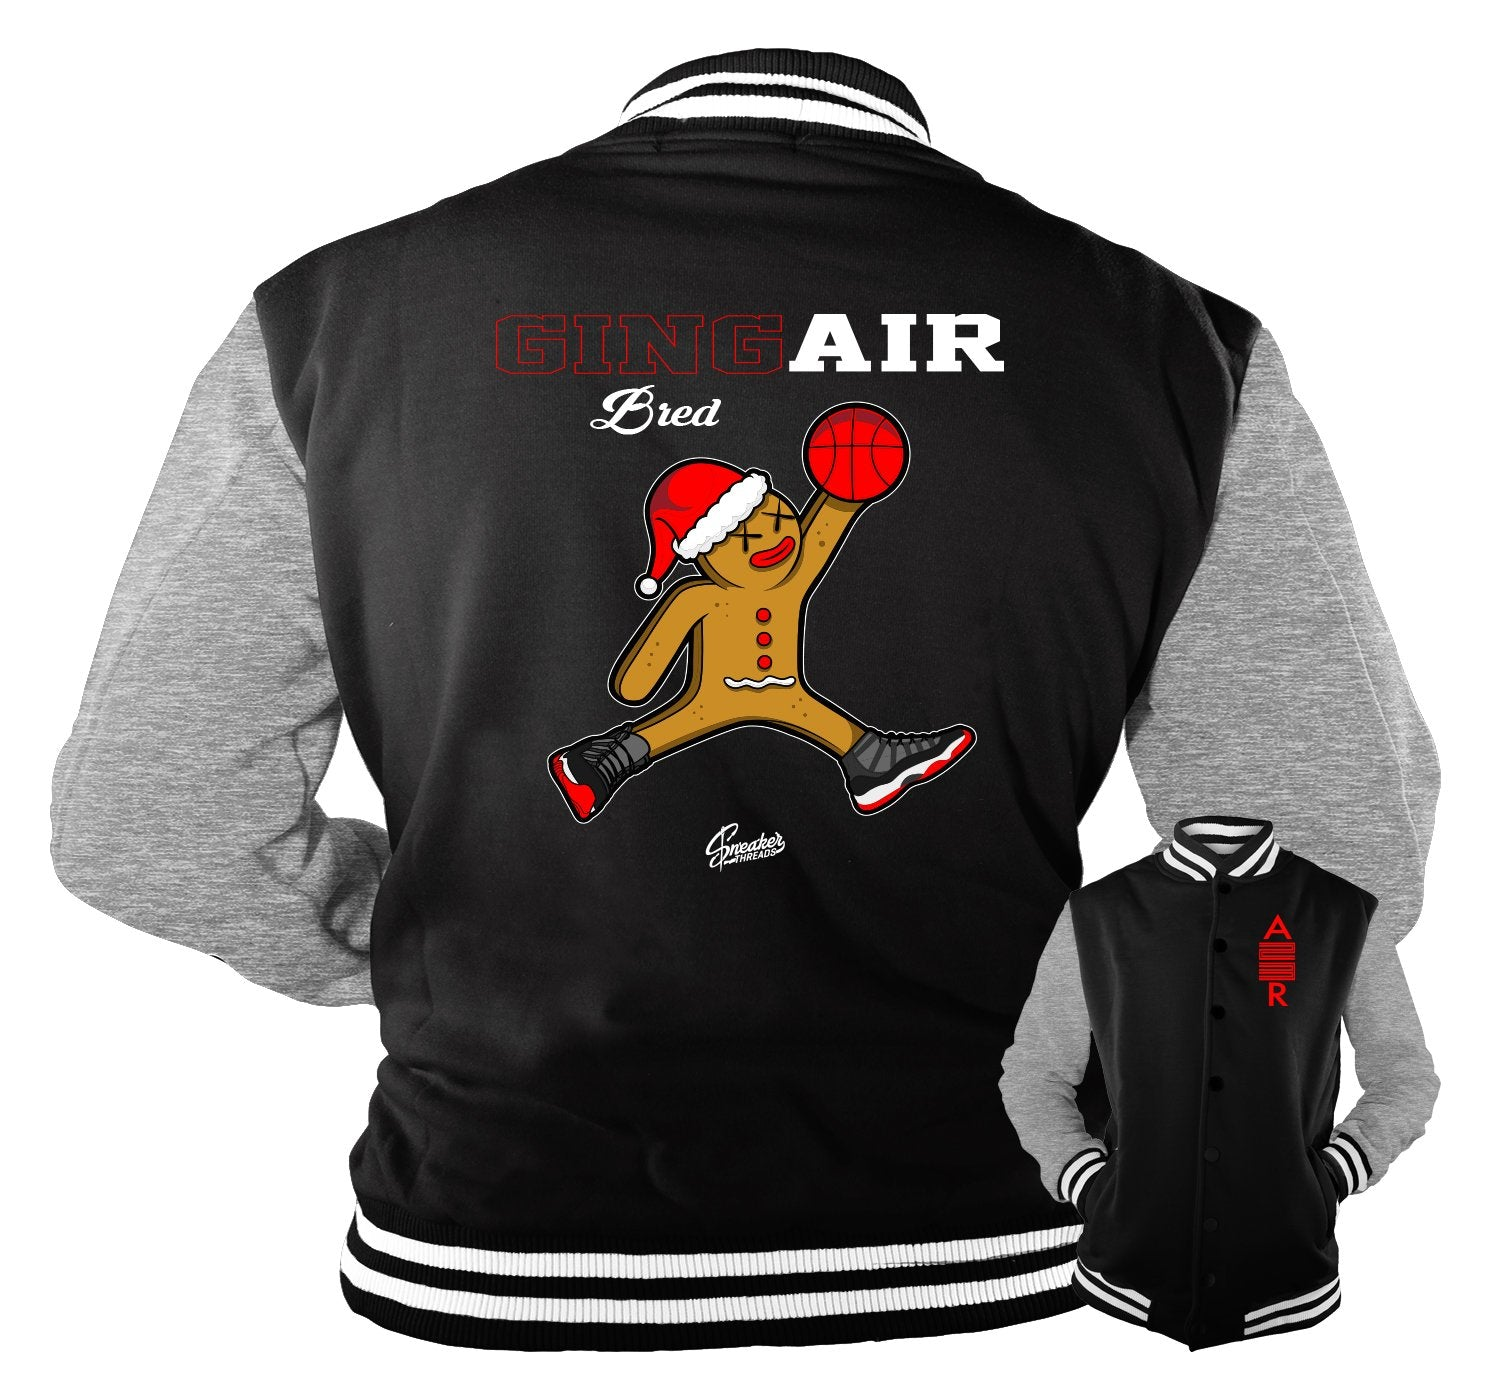 Jordan Air bred 11 Jacket for Winter to match fit